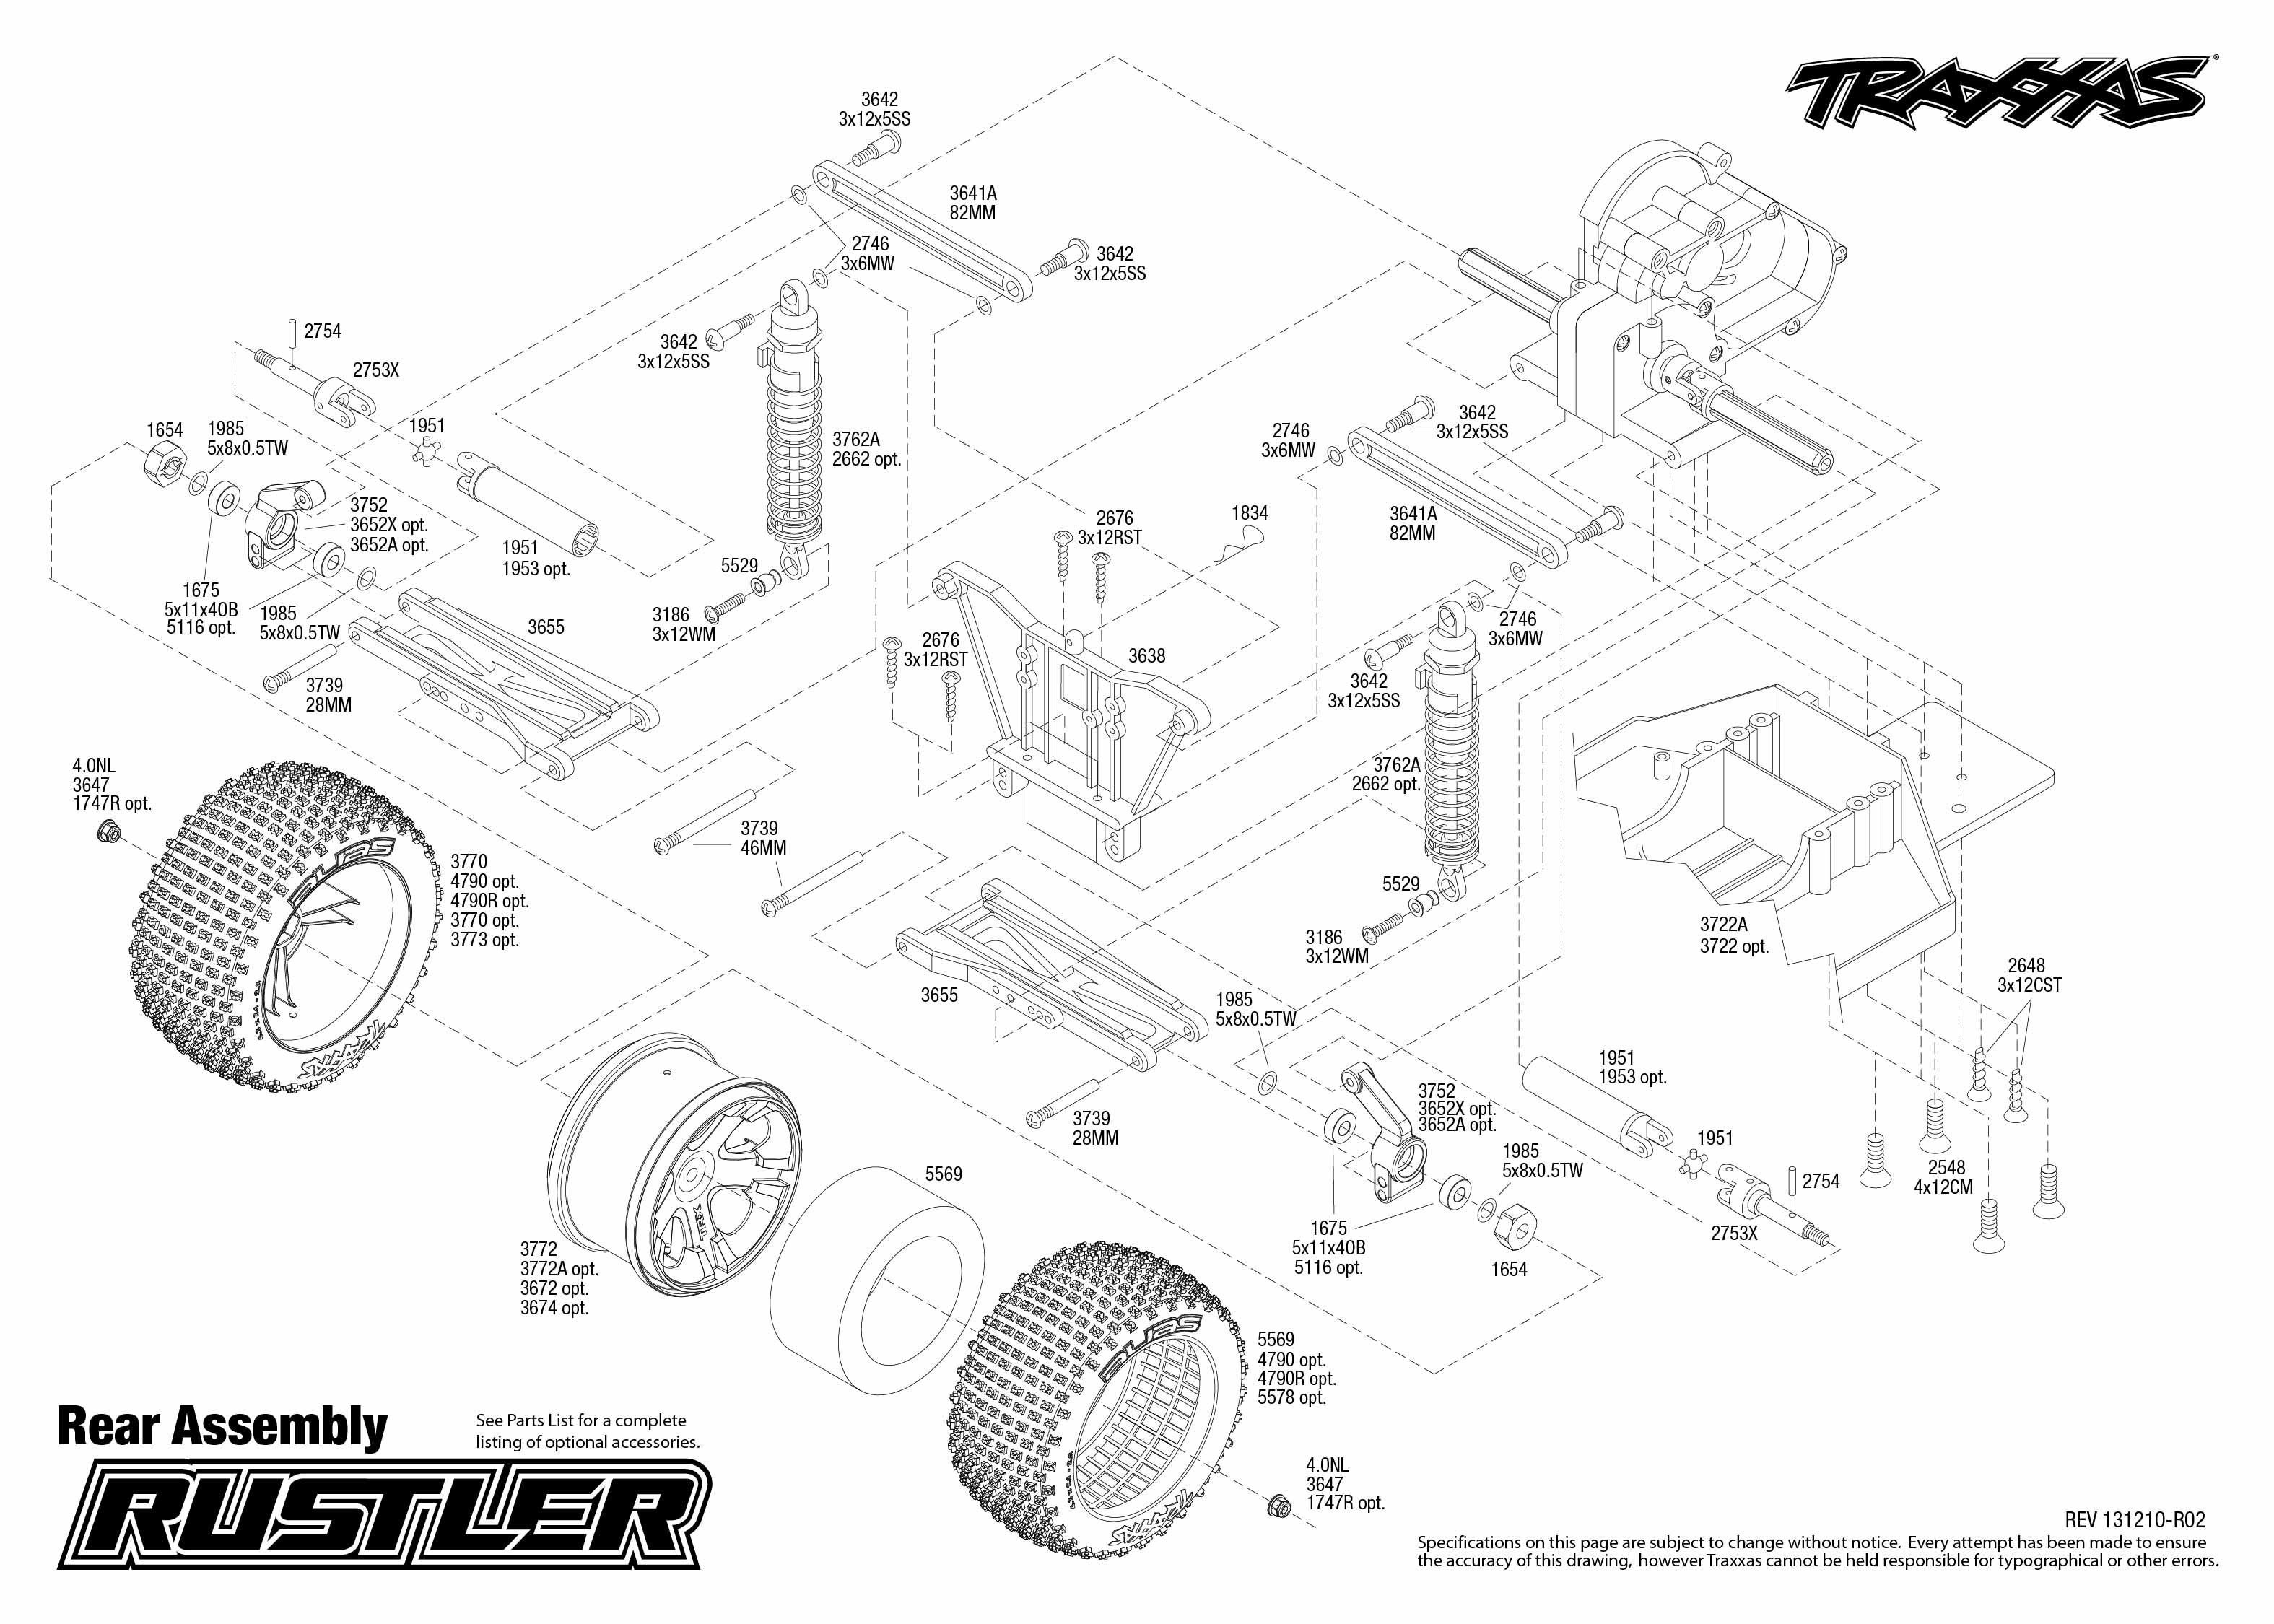 Awe Inspiring Rustler 37054 Rear Assembly Traxxas Wiring Database Ittabxeroyuccorg